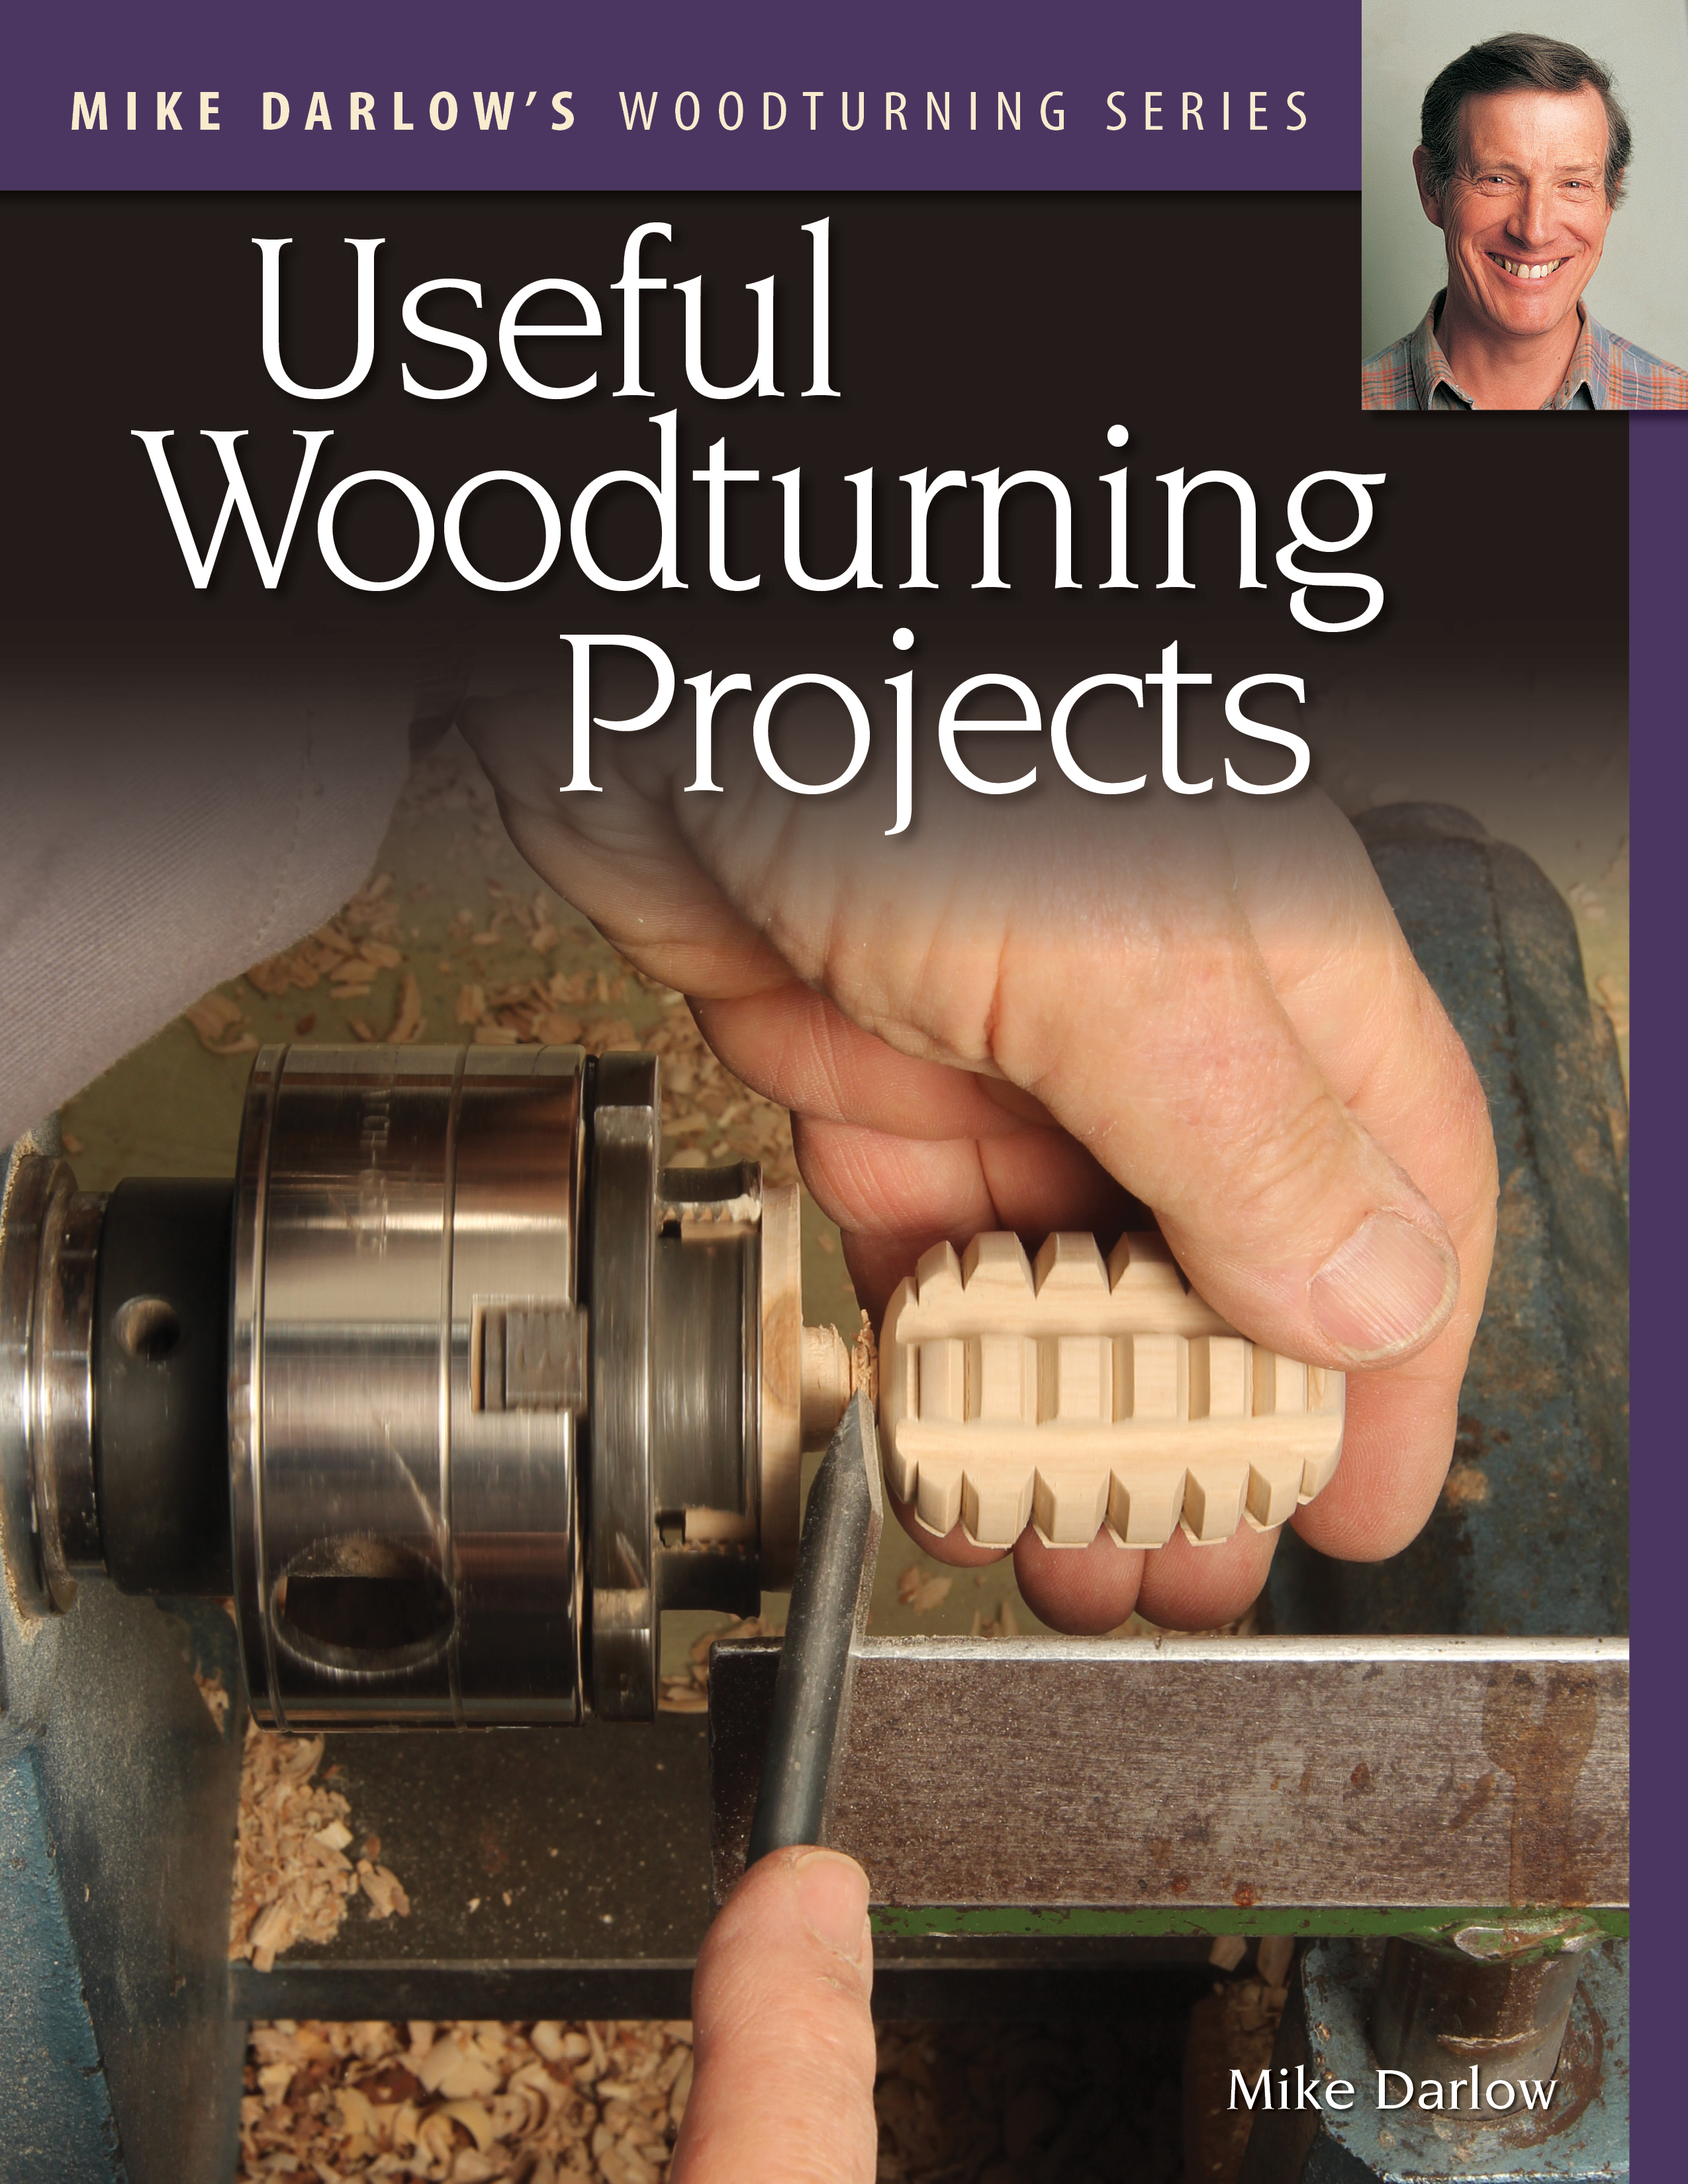 Mike Darlow's Woodturning Series: Useful Woodturning Projects